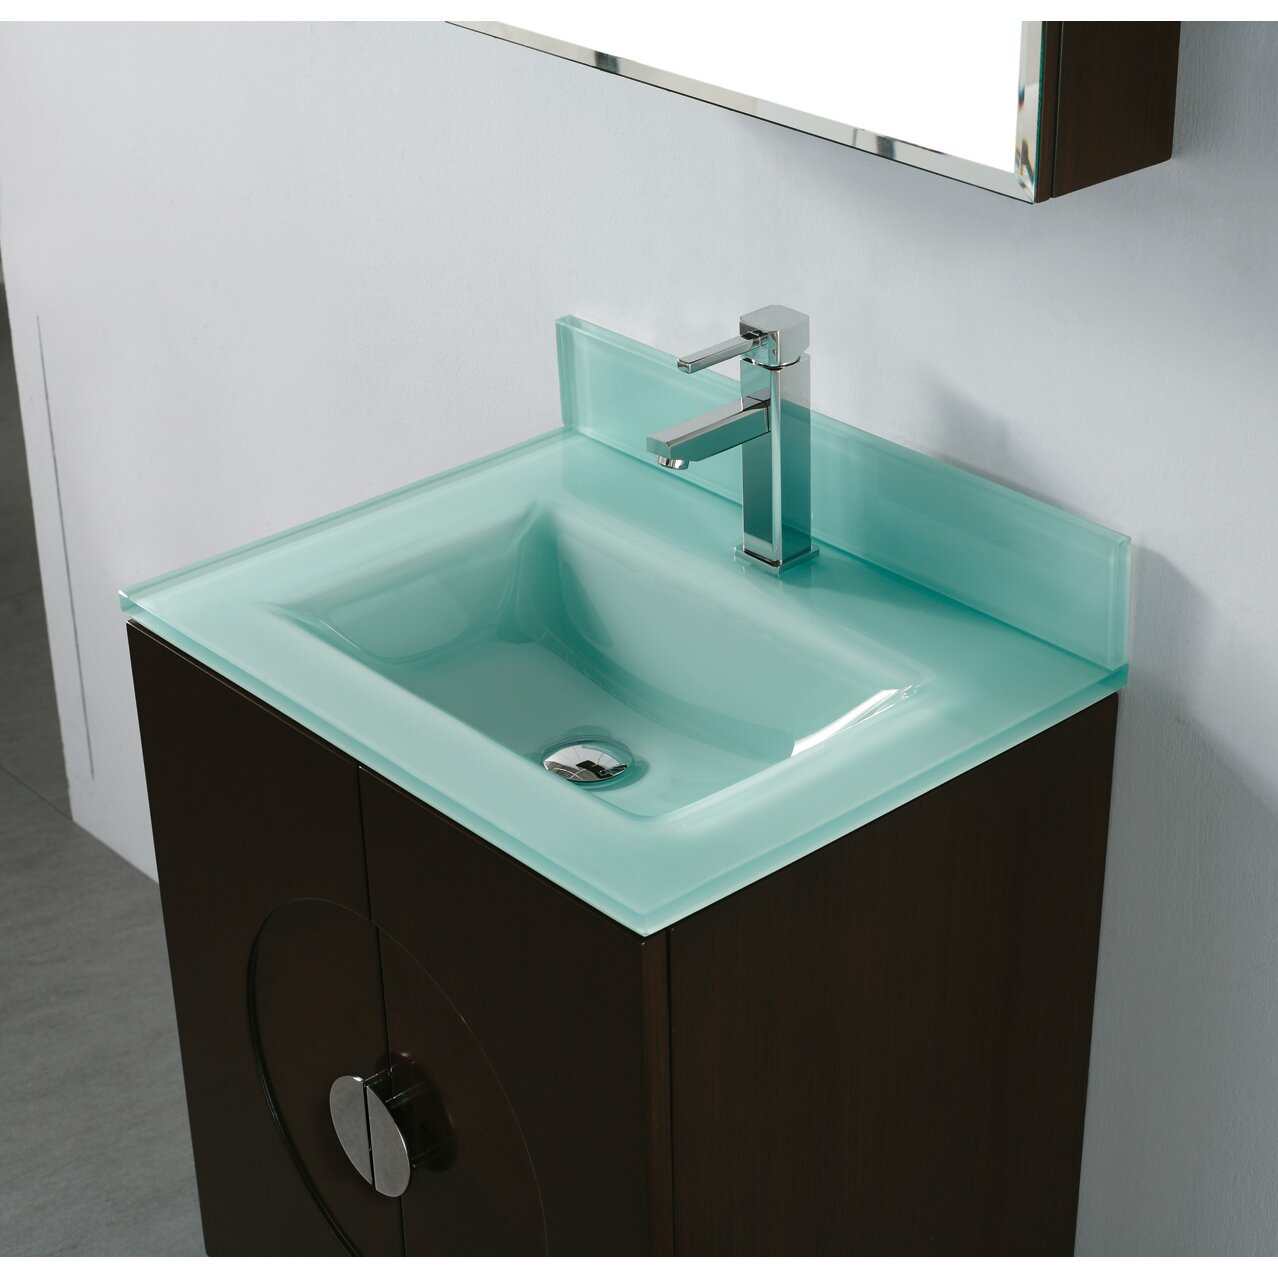 Countertop Lavatory Sink : Madeli Tempered Glass Countertop Bathroom Sink & Reviews Wayfair